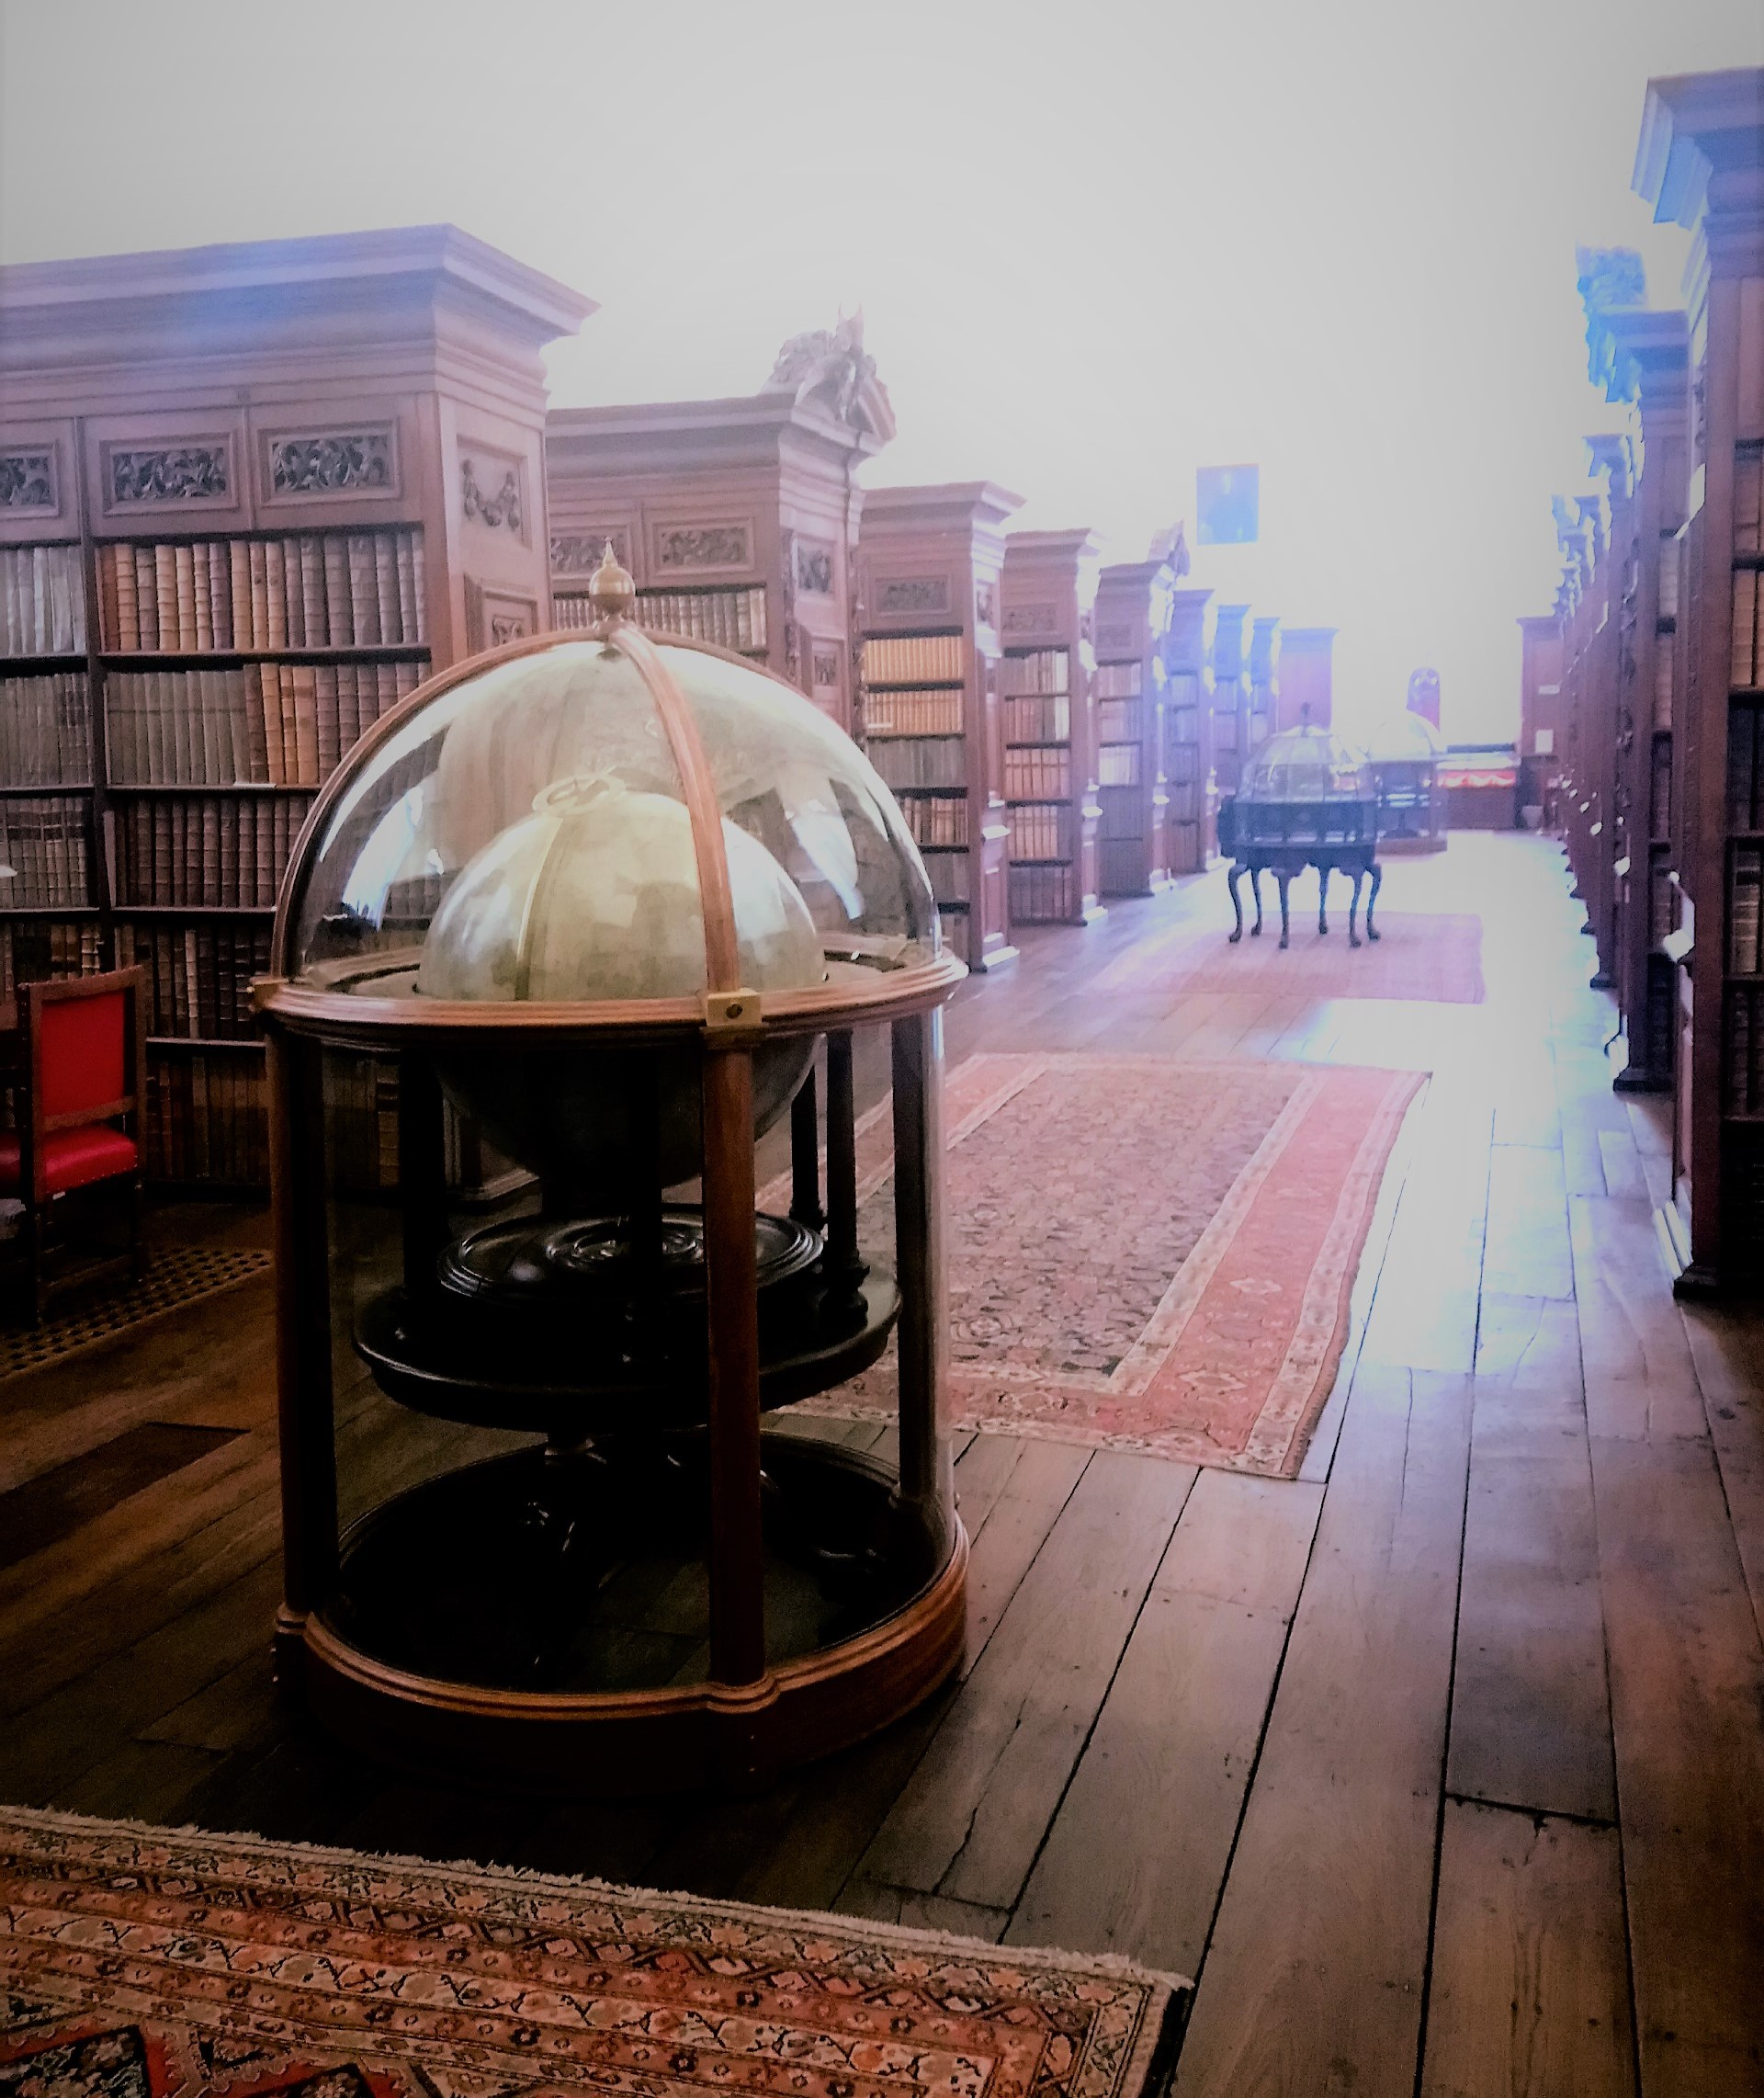 A photograph of the Queen's College Library's Upper Library with orreries in the central passage.